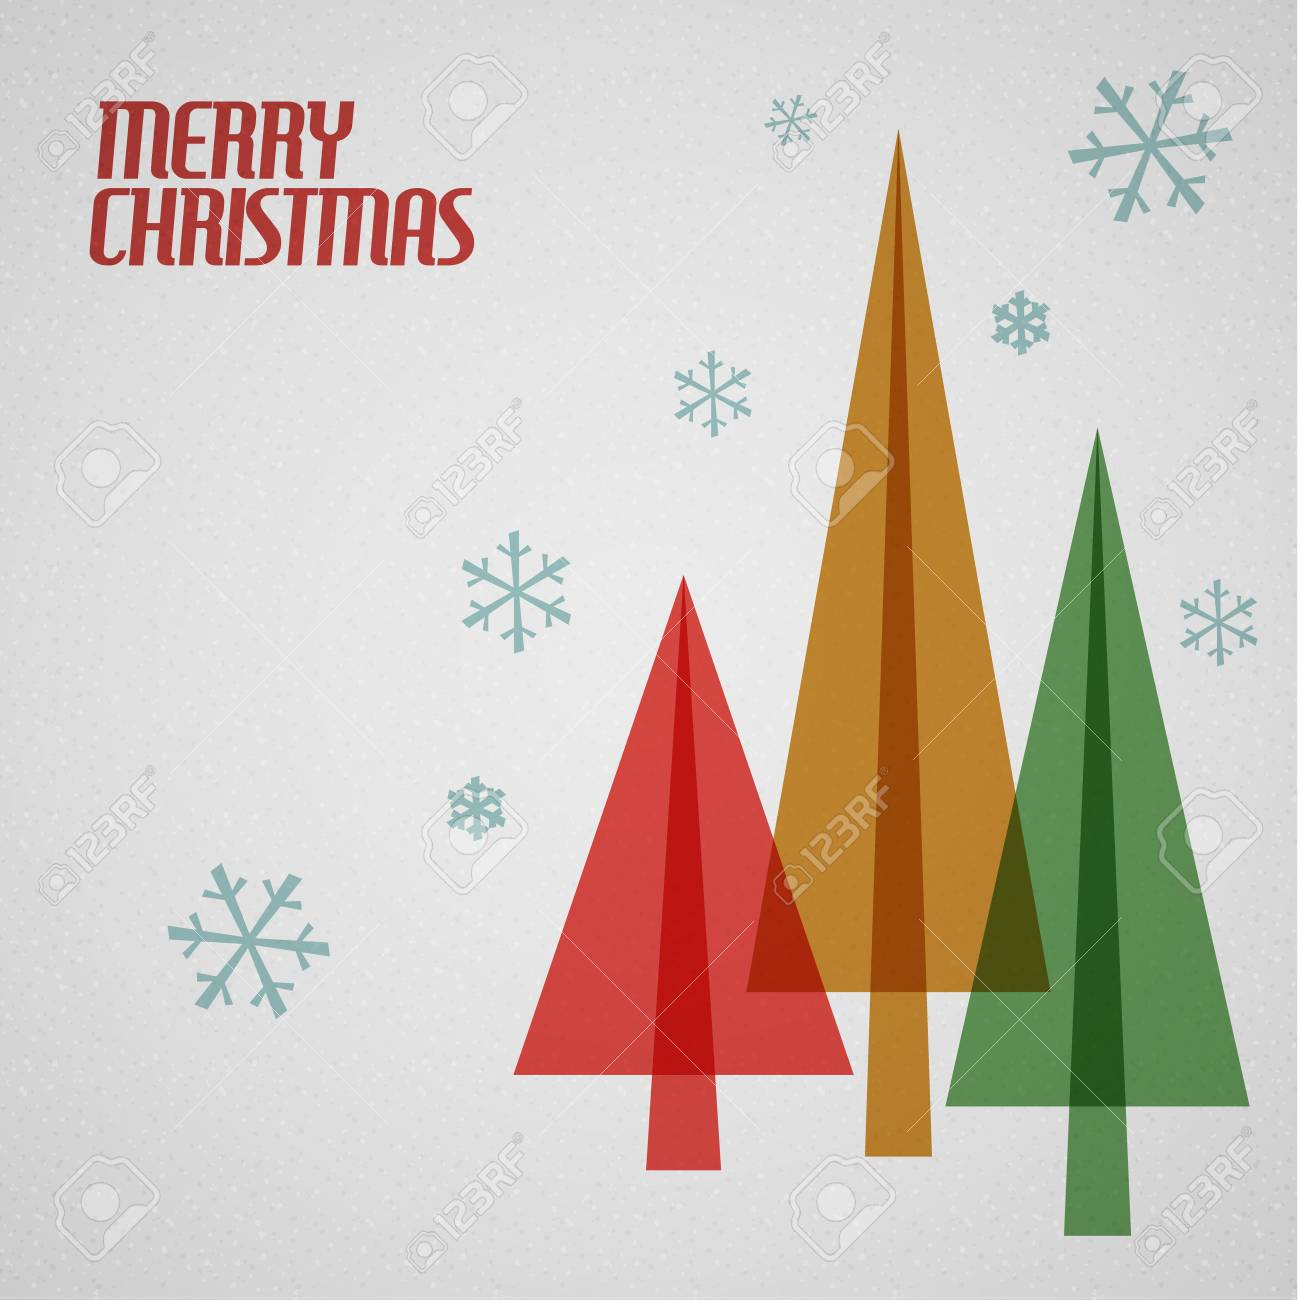 Retro Christmas card with christmas tress and snowflakes - teal, brown and red Stock Vector - 16757842